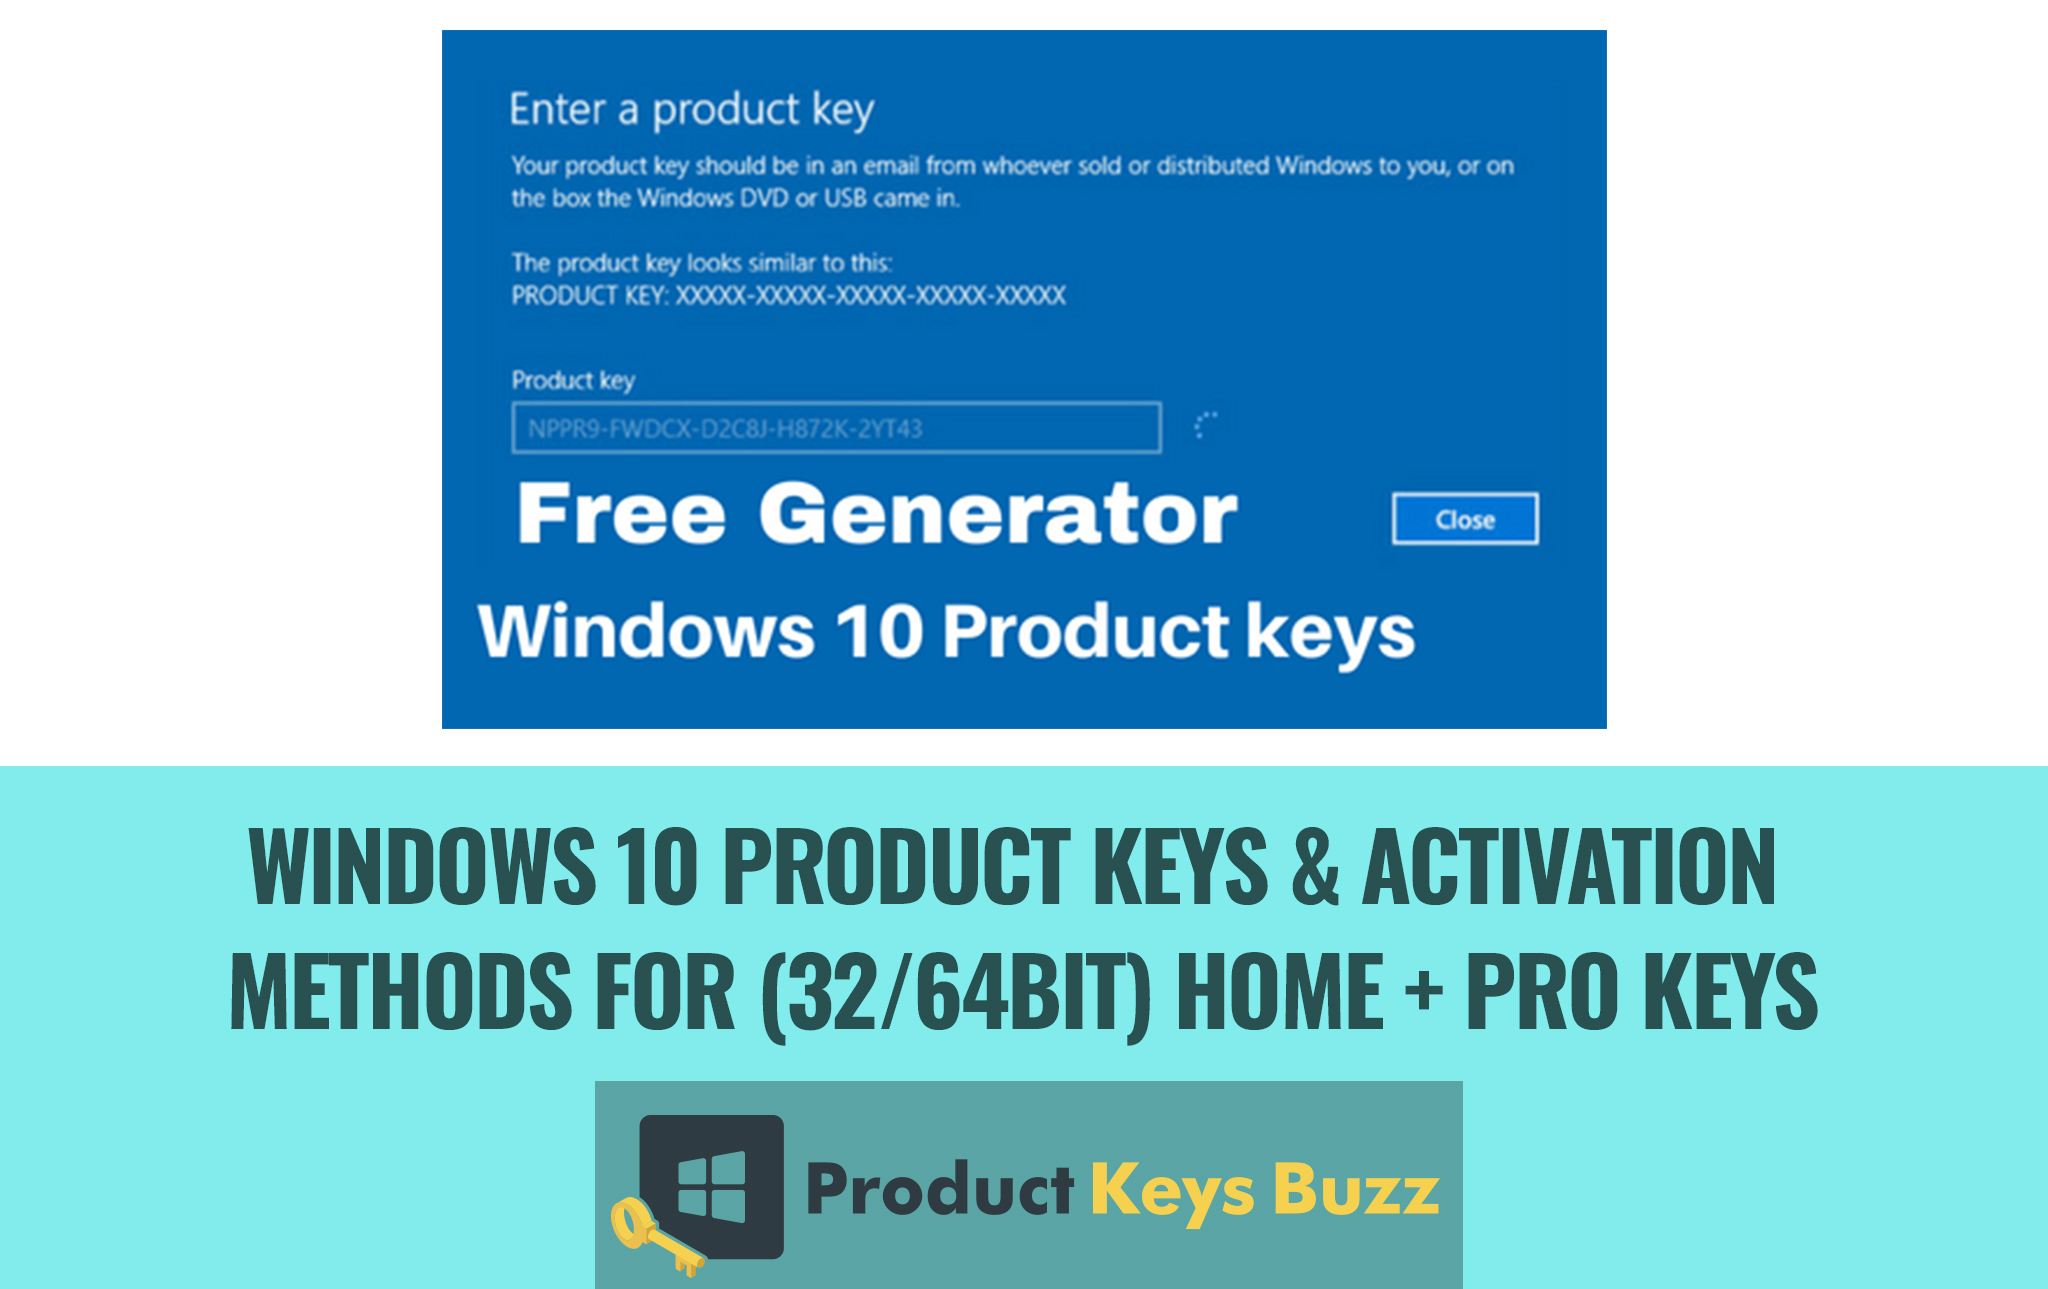 [Today's Working List] Windows 10 Product Keys & Activation Methods for (32/64bit) Home + Pro Keys